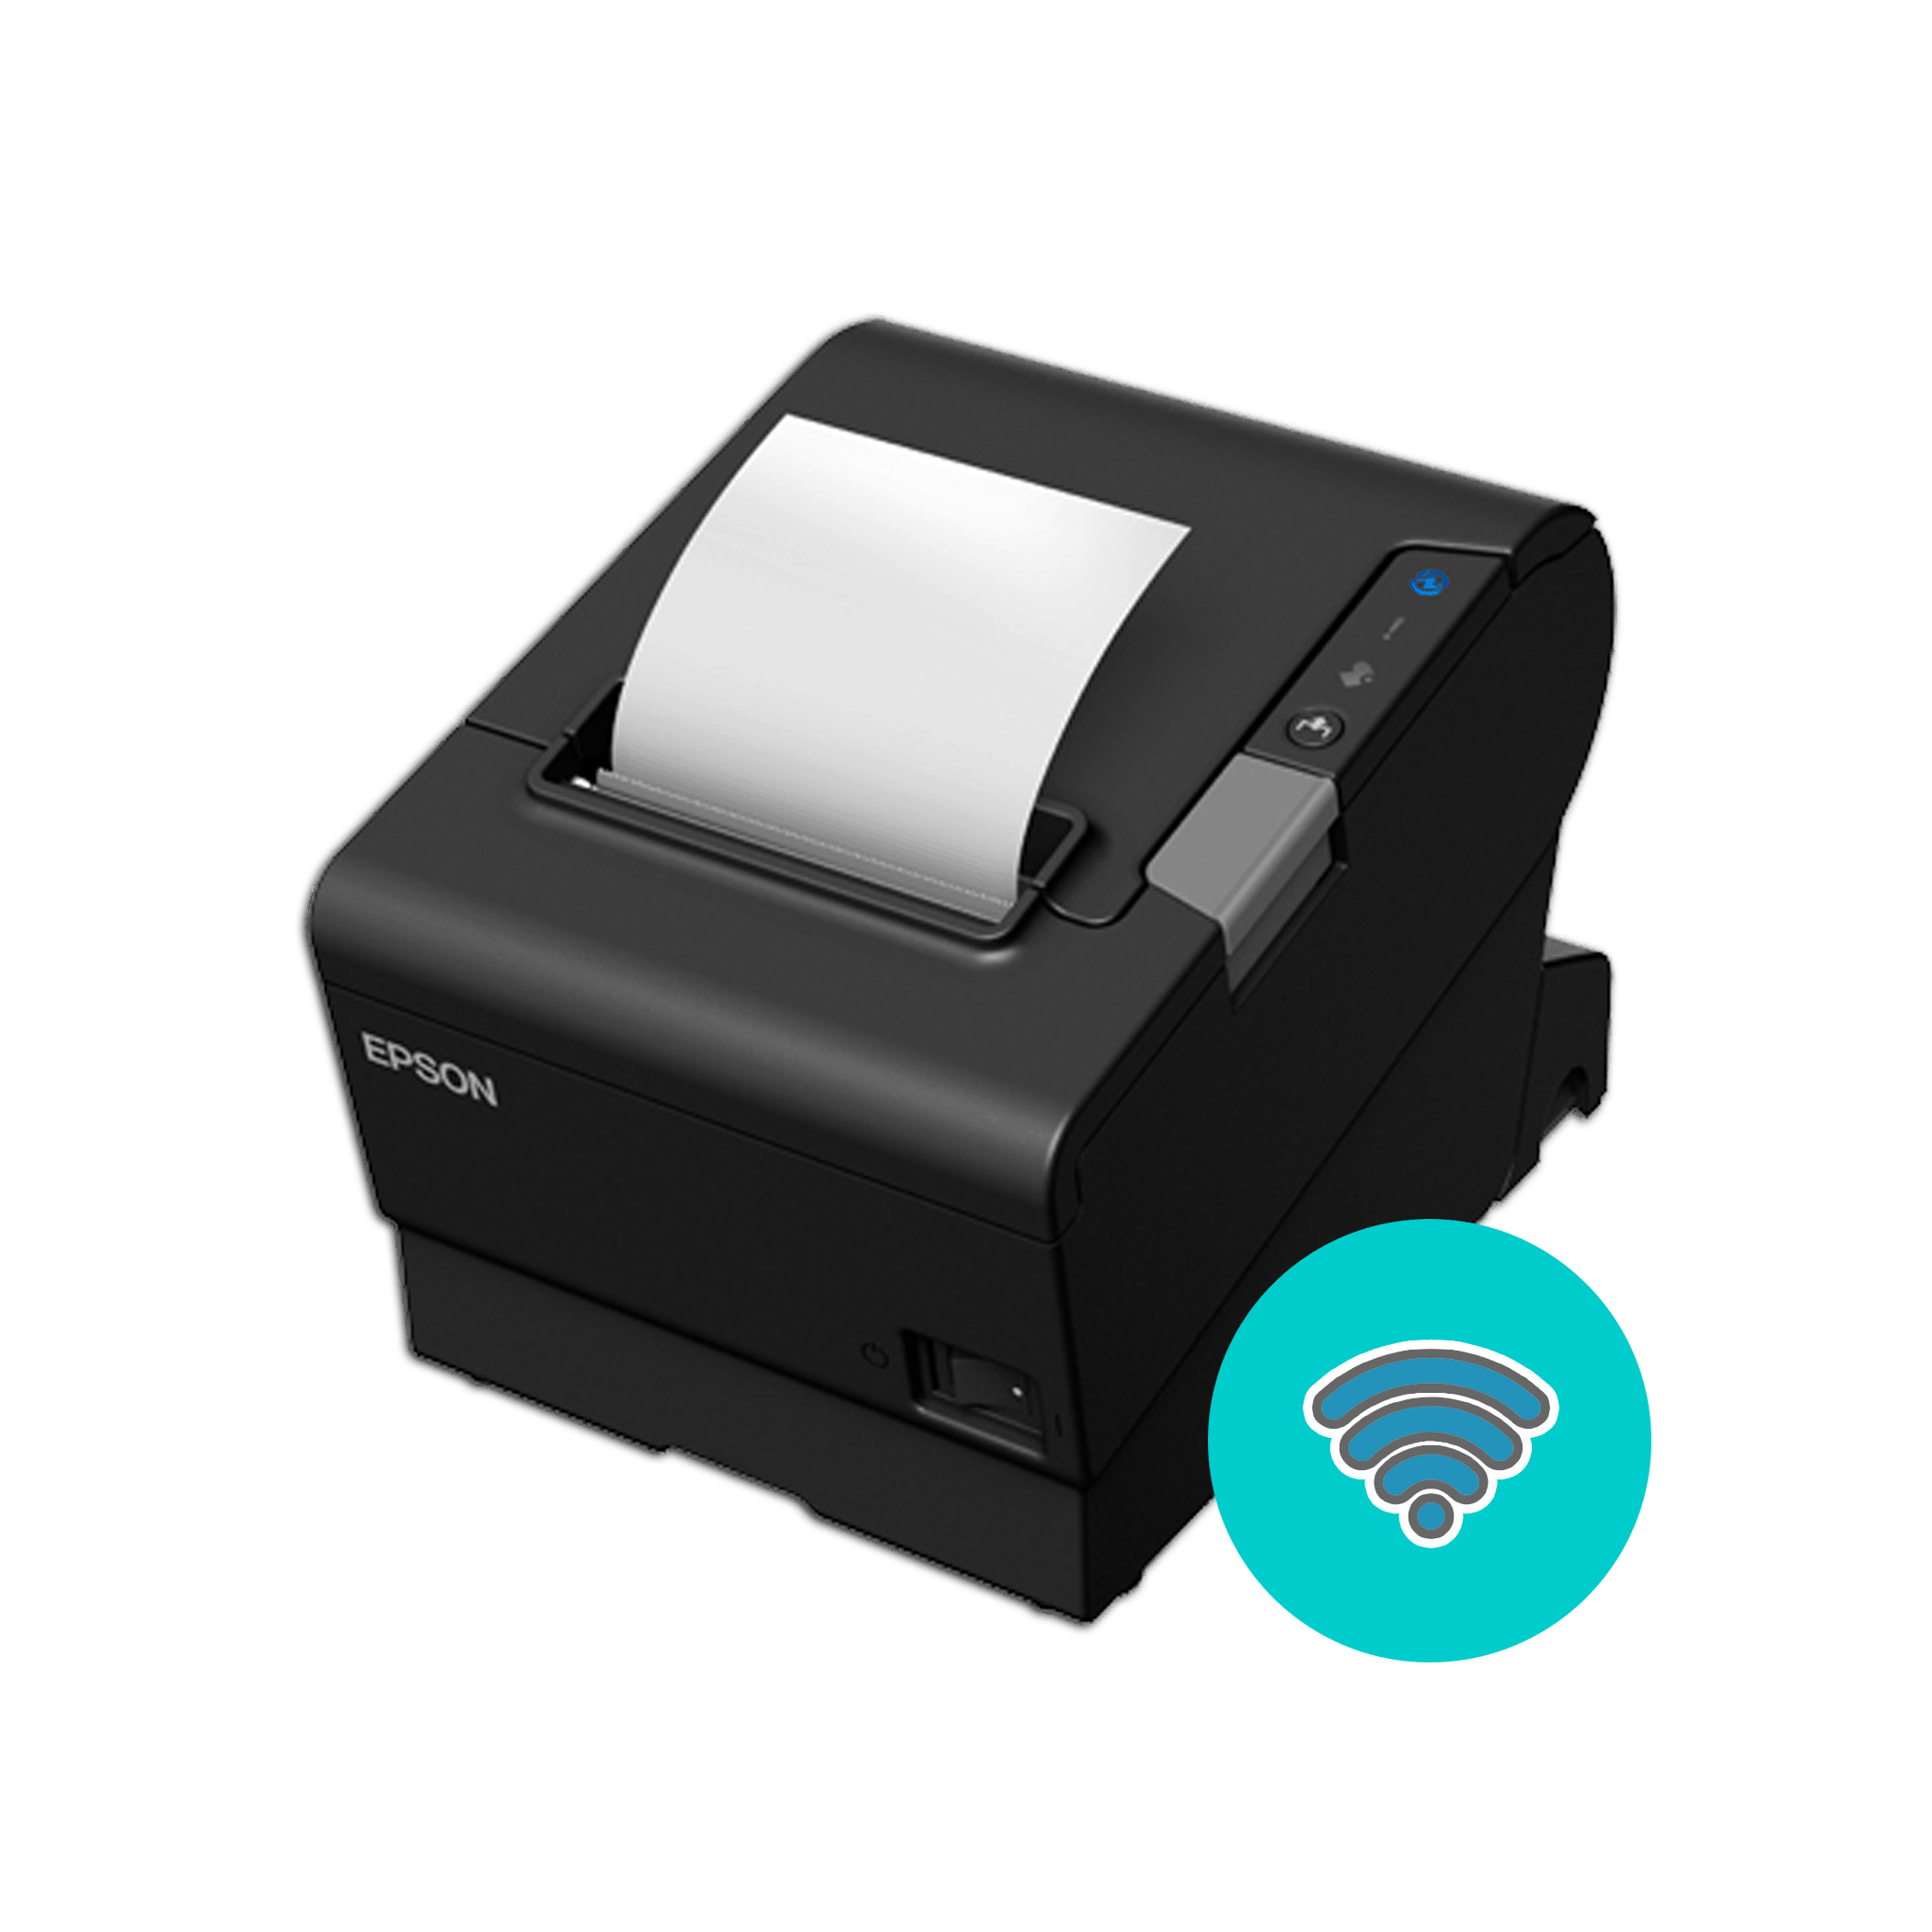 EPSON-TM88-WIRELESS-PRINTER